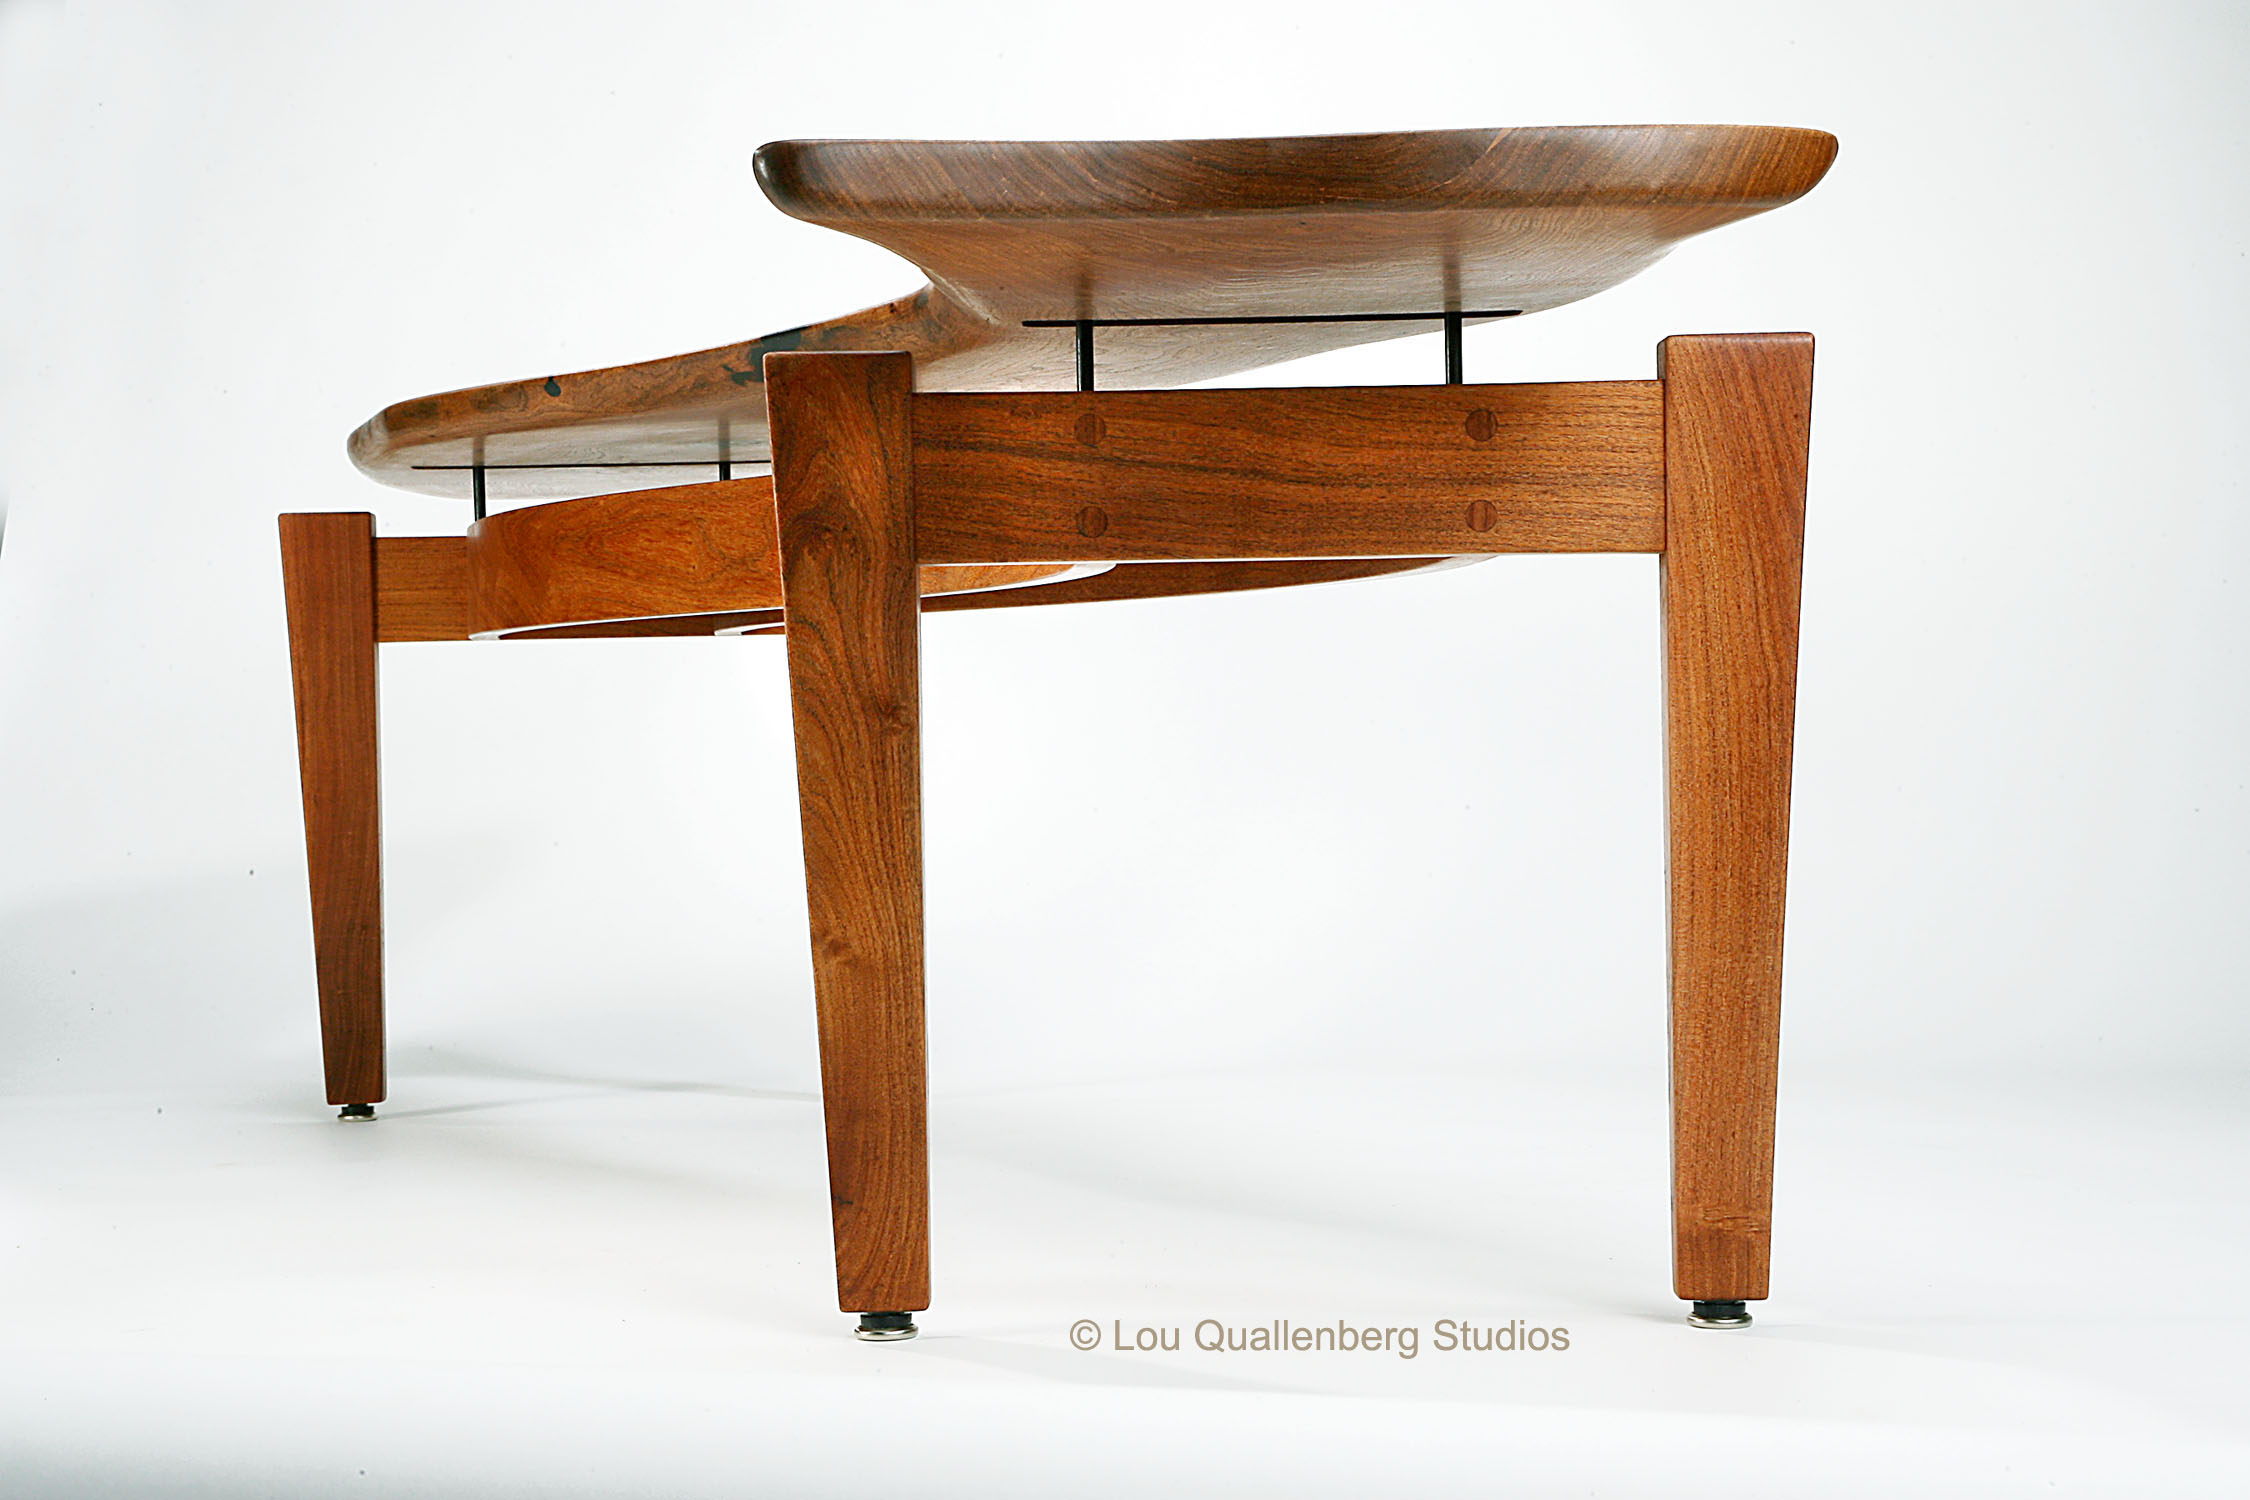 About The Artist Lou Quallenberg And His Contemporary Texas Mesquite Furniture